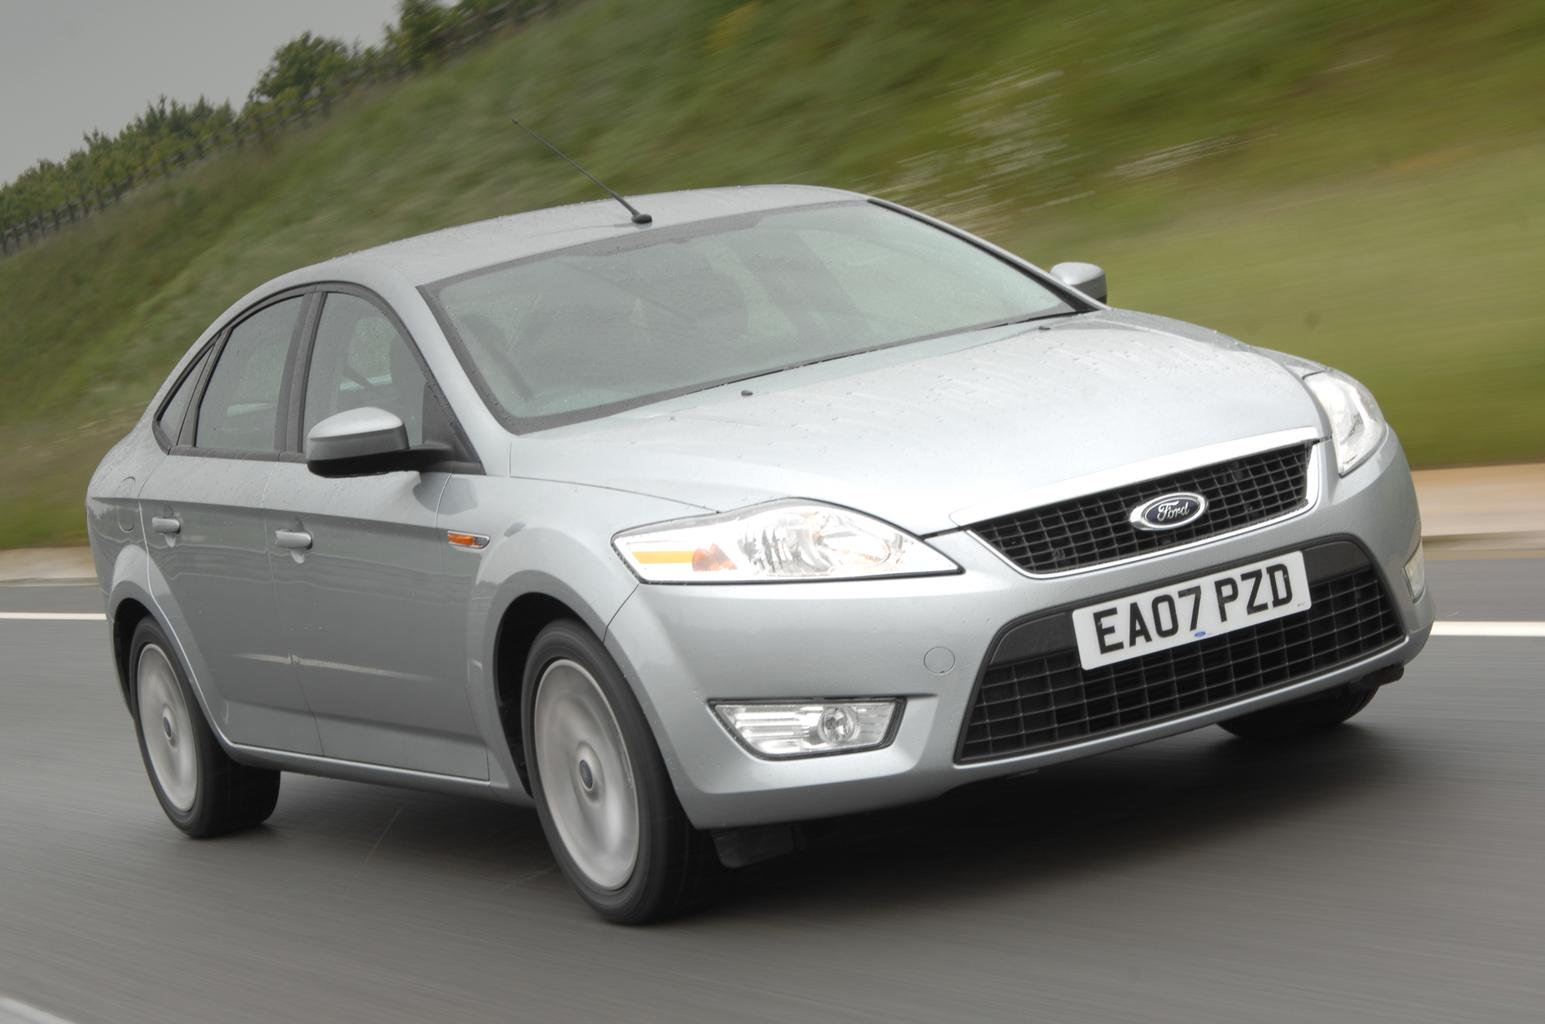 7 reasons to buy a Ford Mondeo